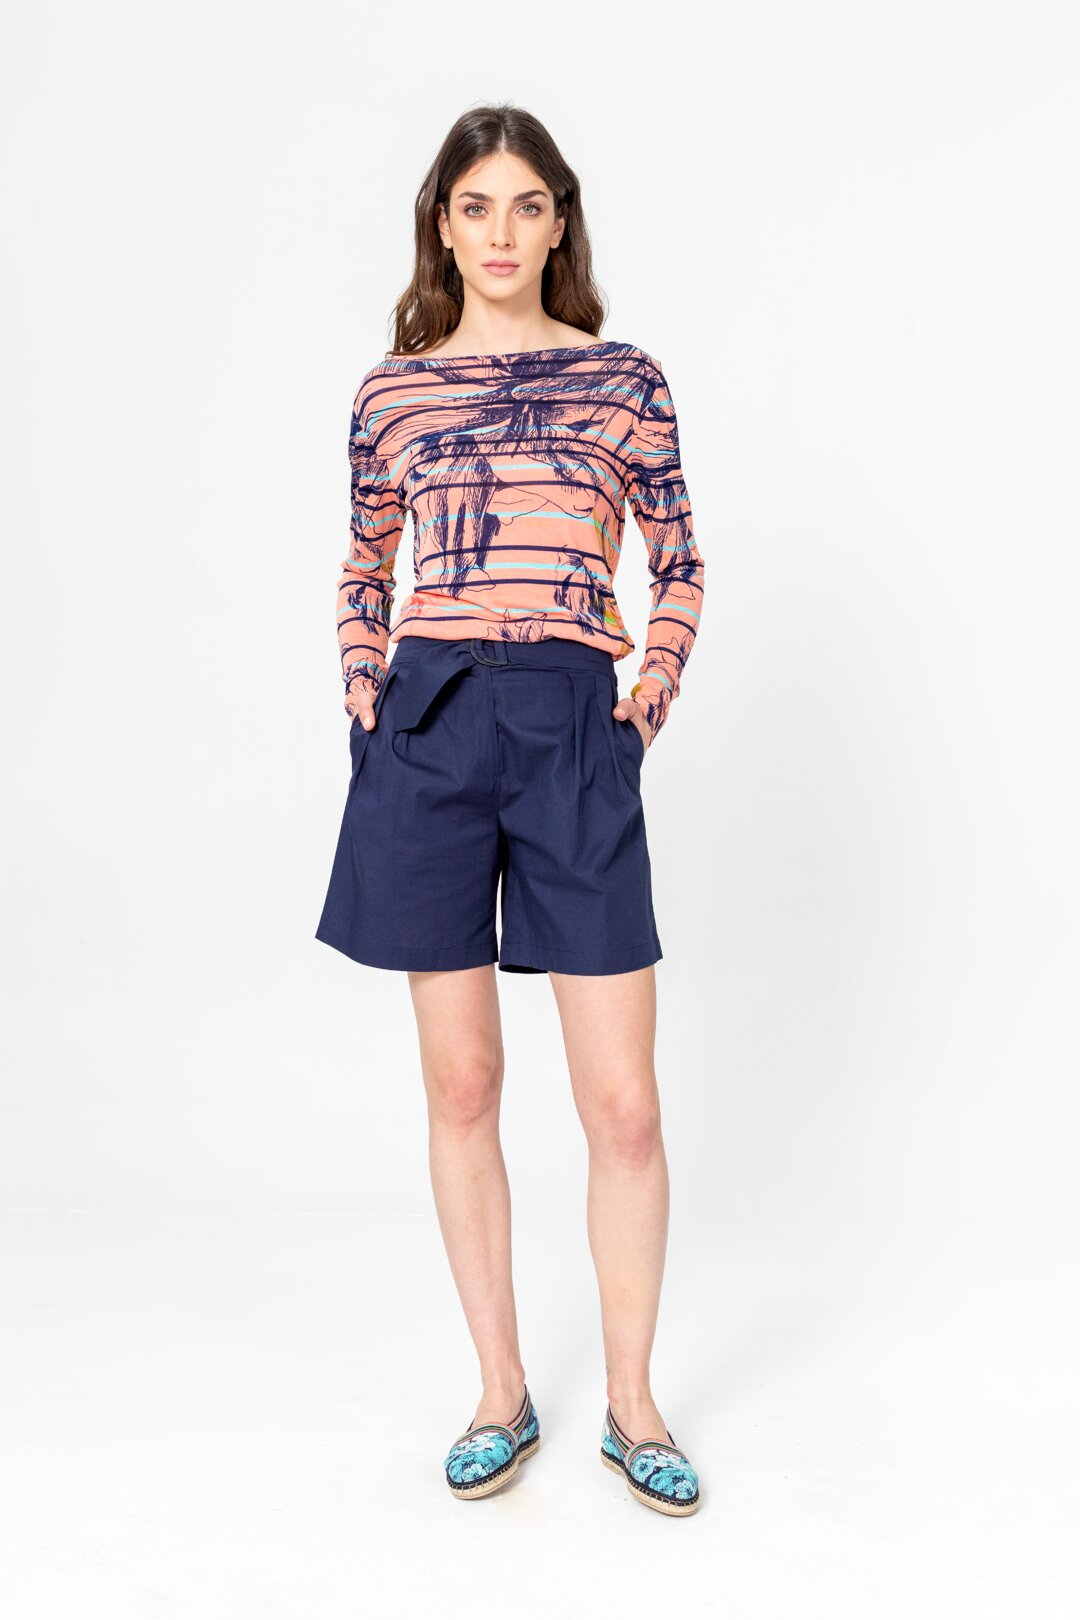 outfit-20123443b